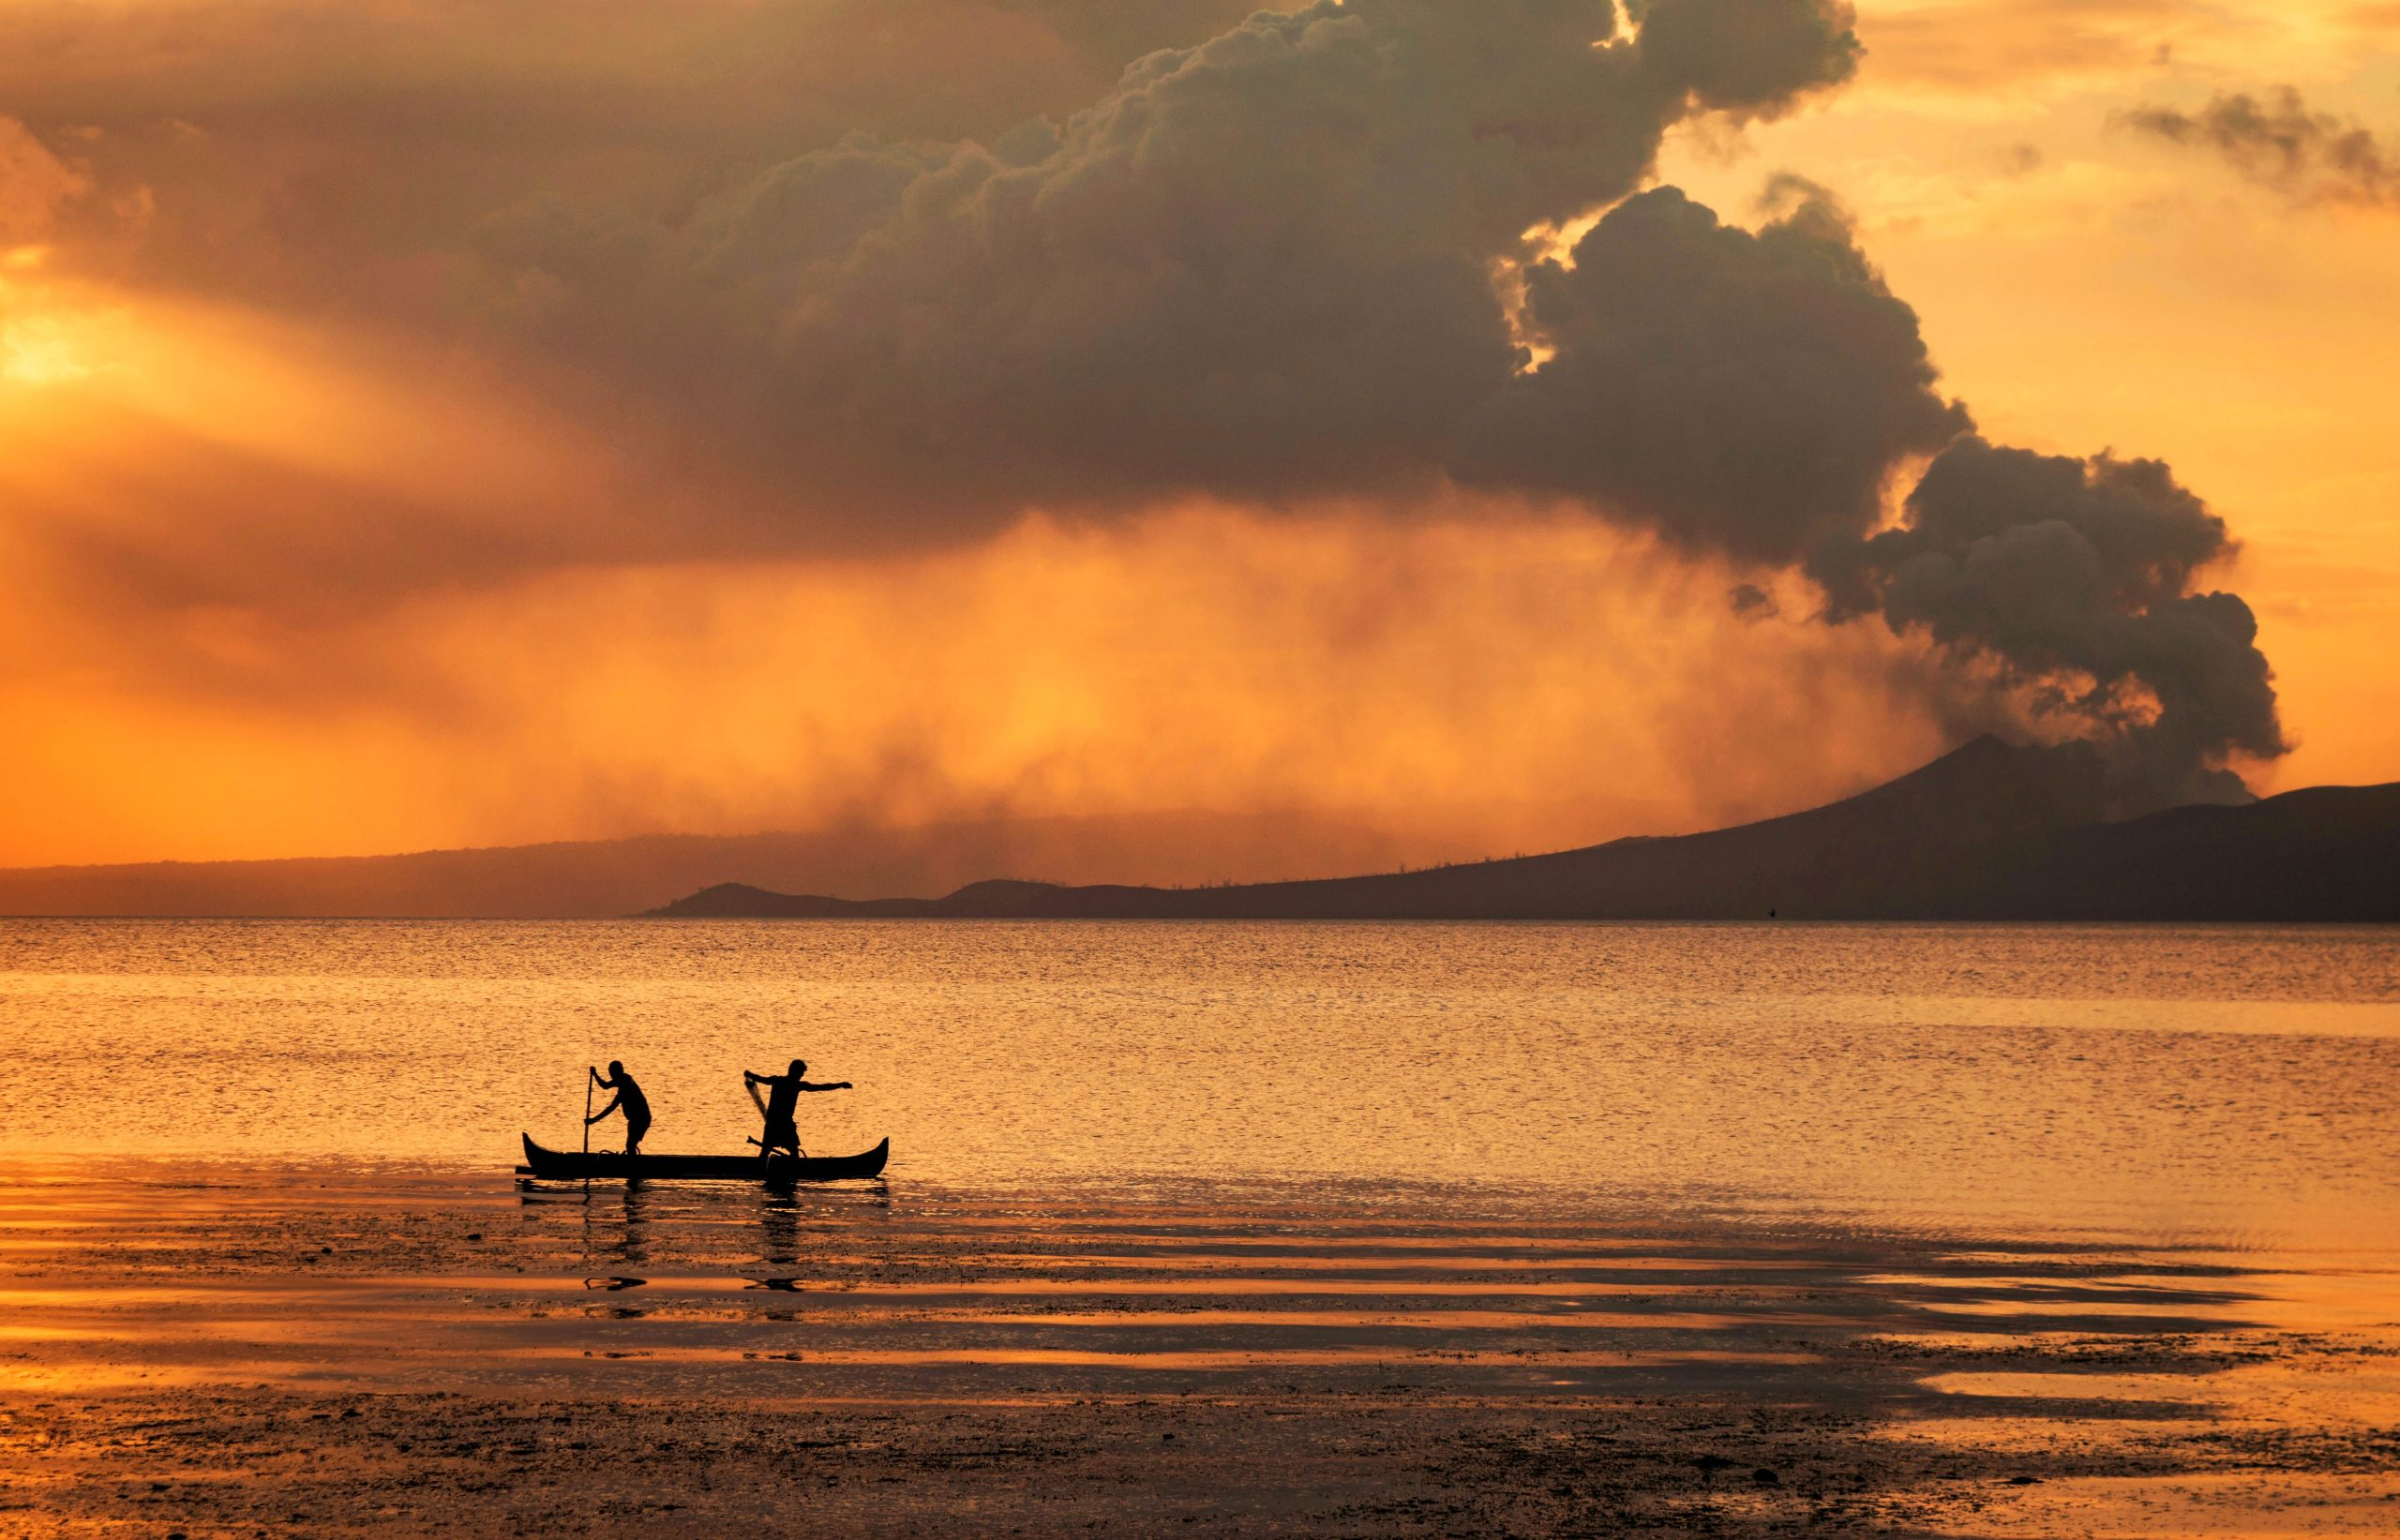 Two men on a boat sailing across a vast body of water while behind them a volcano erupts